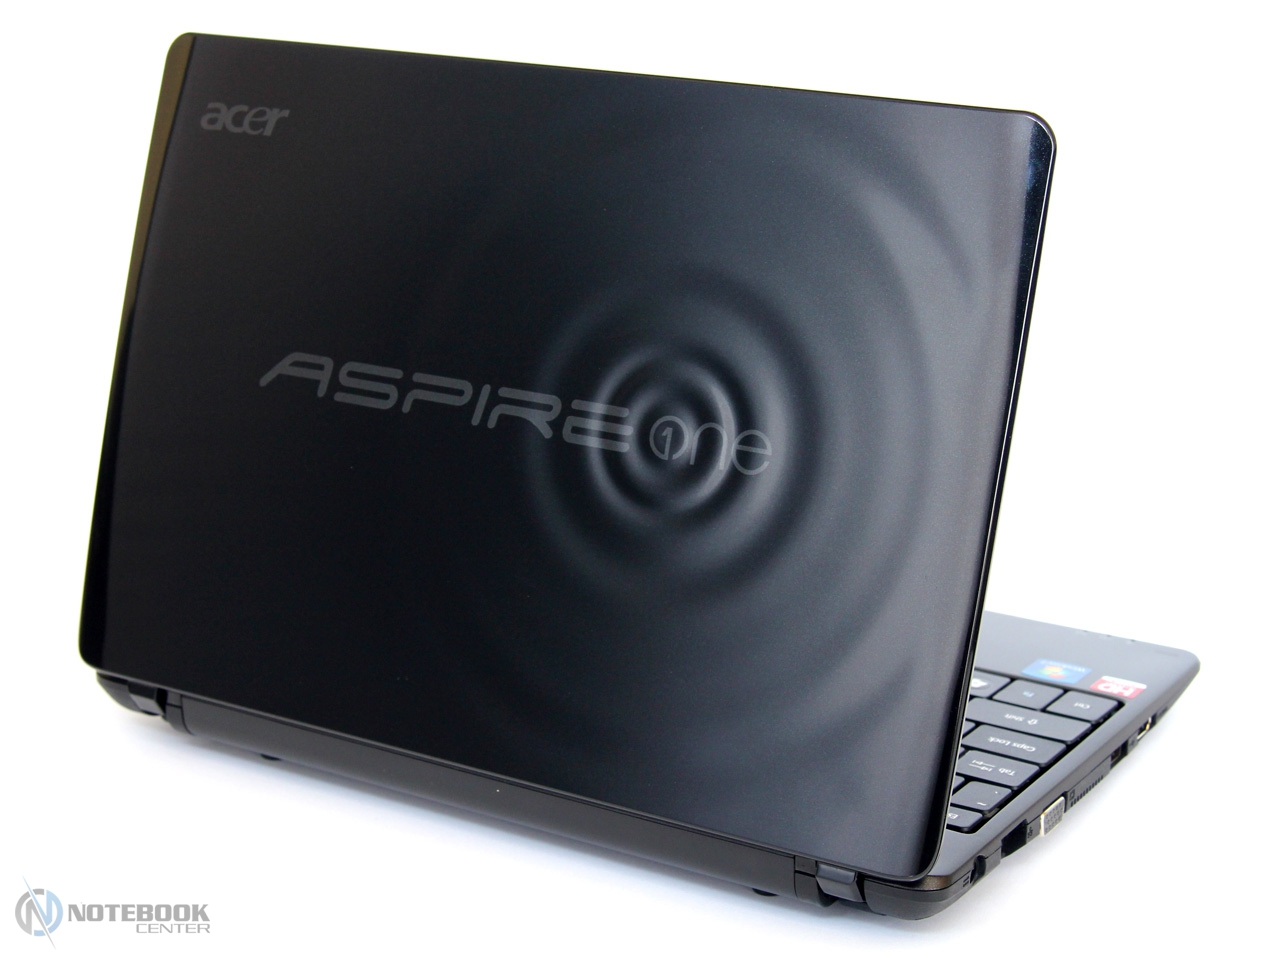 Acer Aspire One Pci Device Driver Download